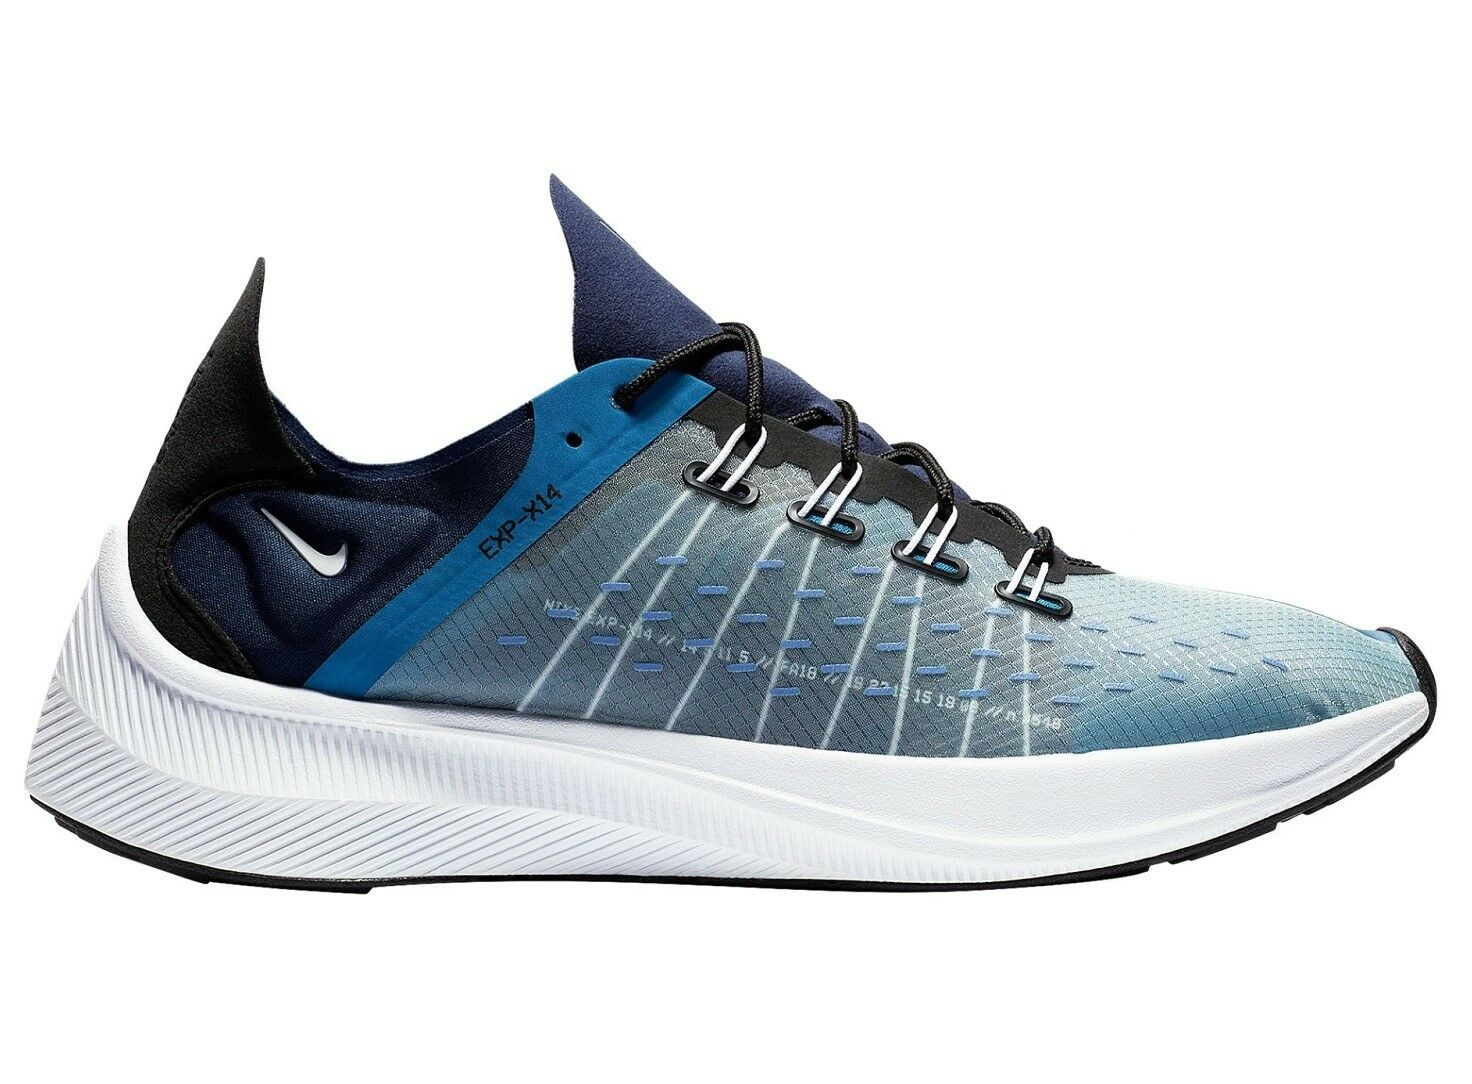 Nike EXP X14 Mens AO1554-401 Mountain bluee Navy Athletic Running shoes Size 9